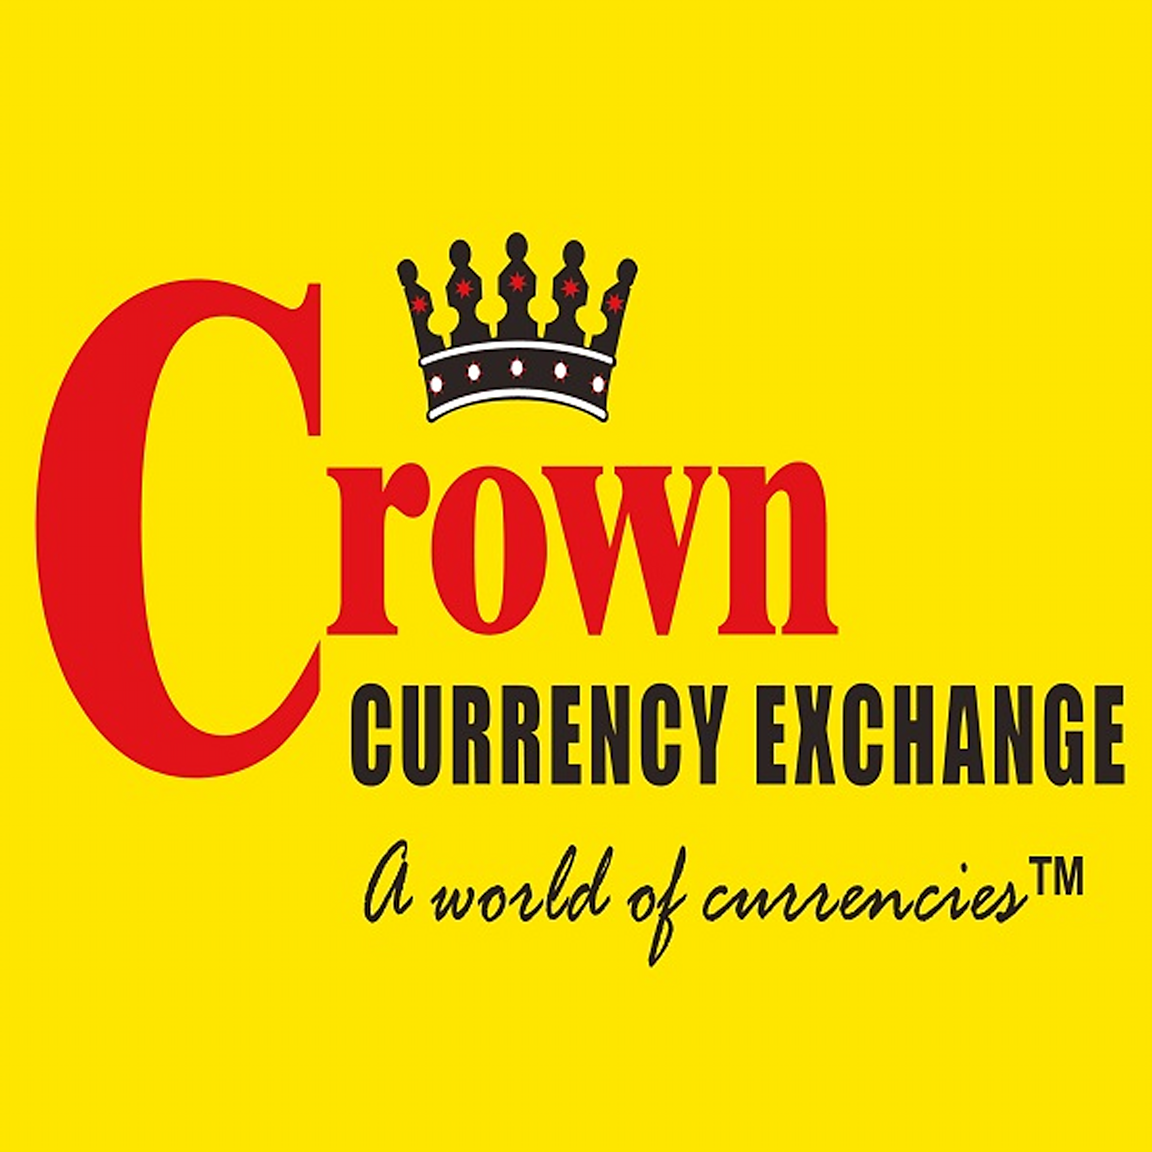 crown-currency-exchange-logo